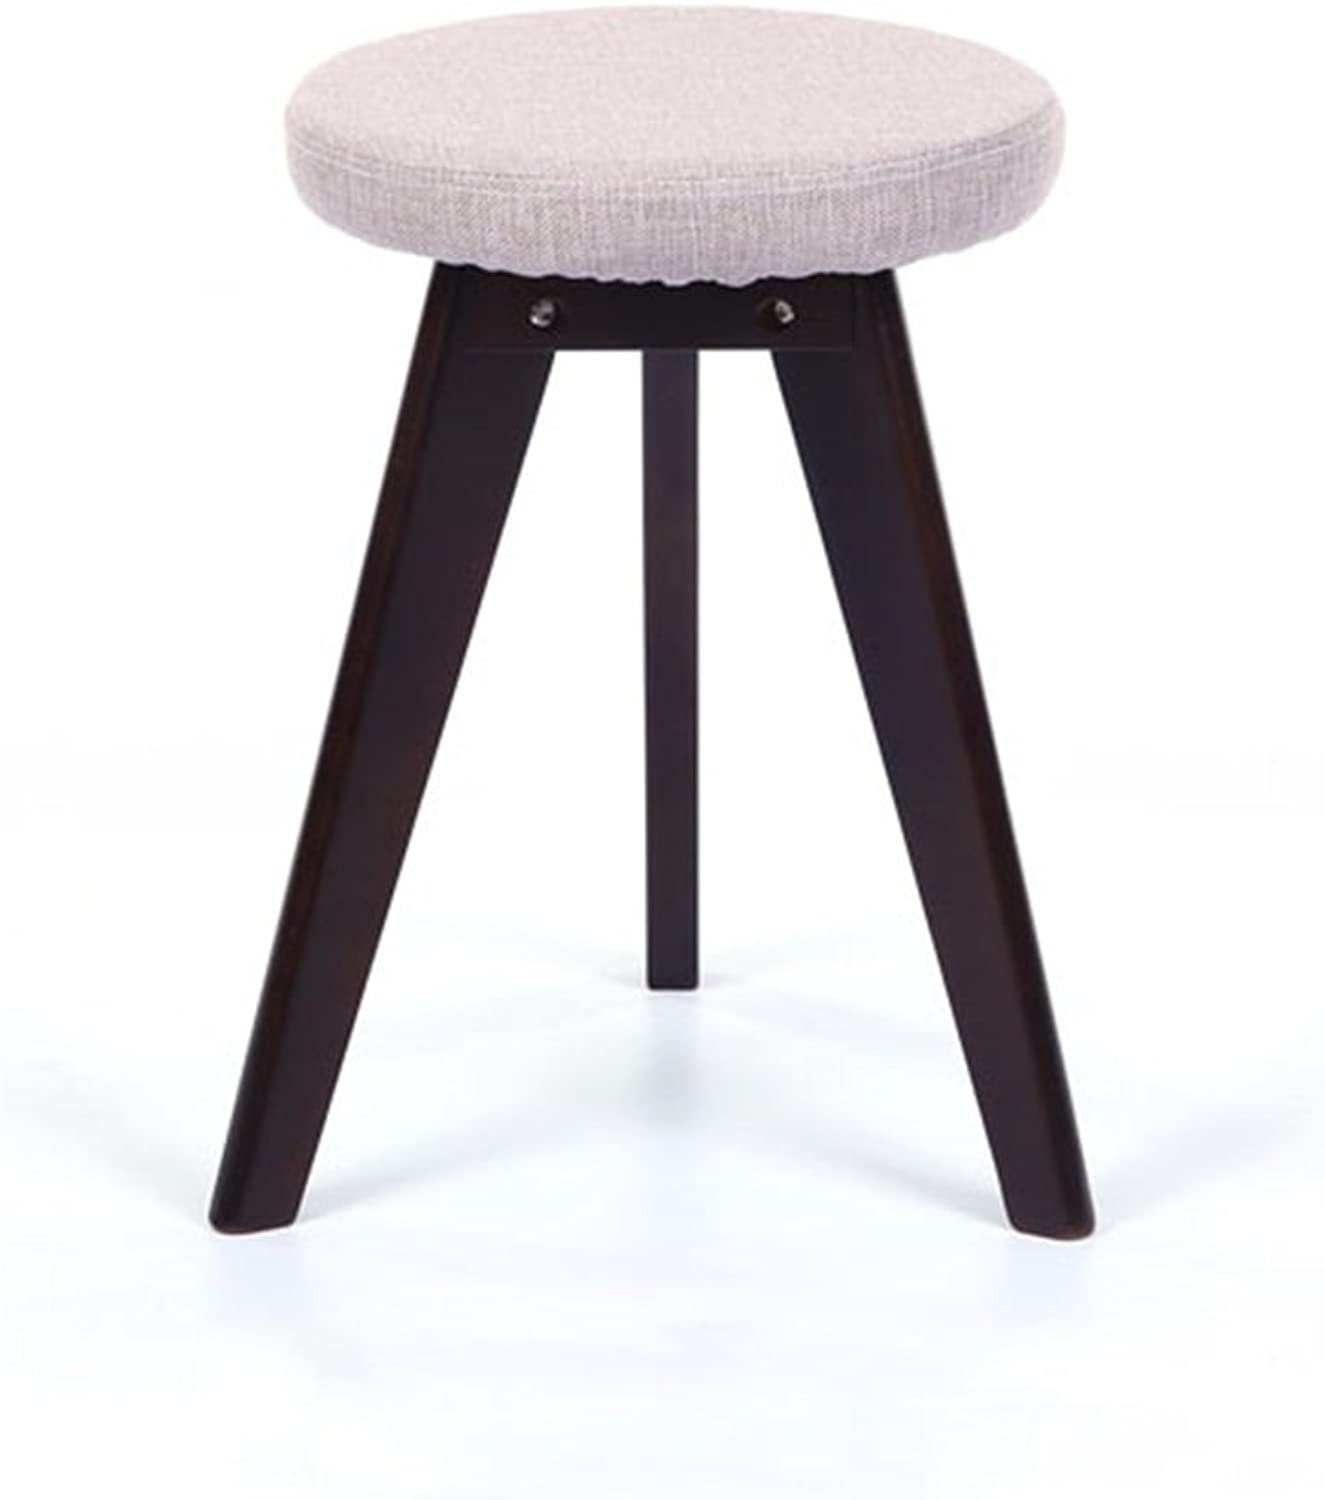 SYF Footstool Beige Creative Solid Wood Footstool Change shoes Stool Makeup Stool Brown Foot Cloth Dining Chair Stool A+